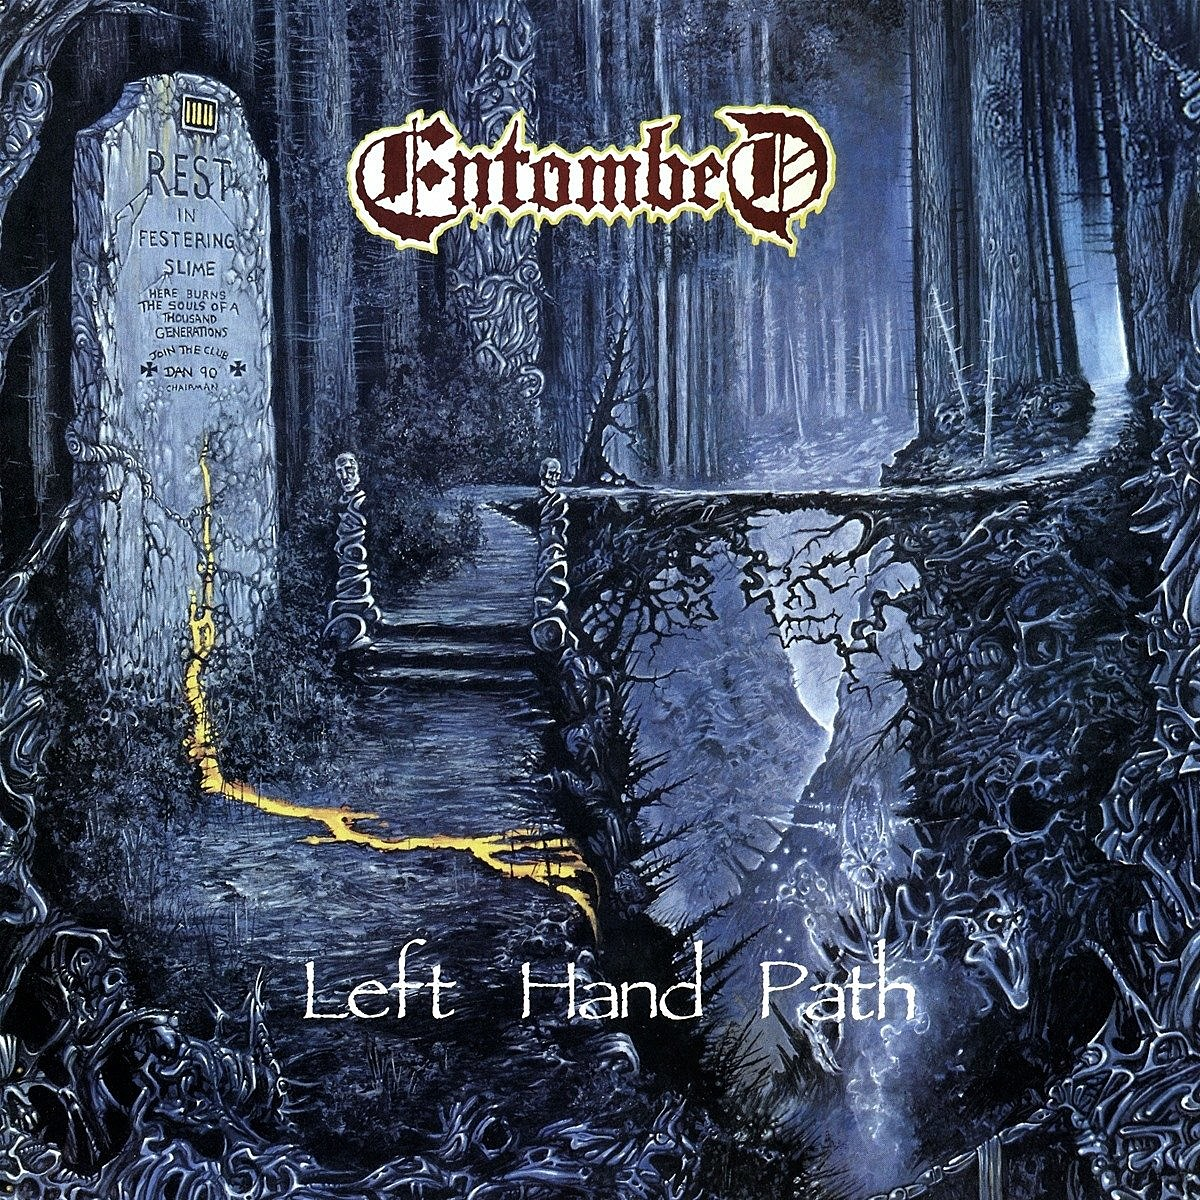 ENTOMBED, LEFT HAND PATH (1990)